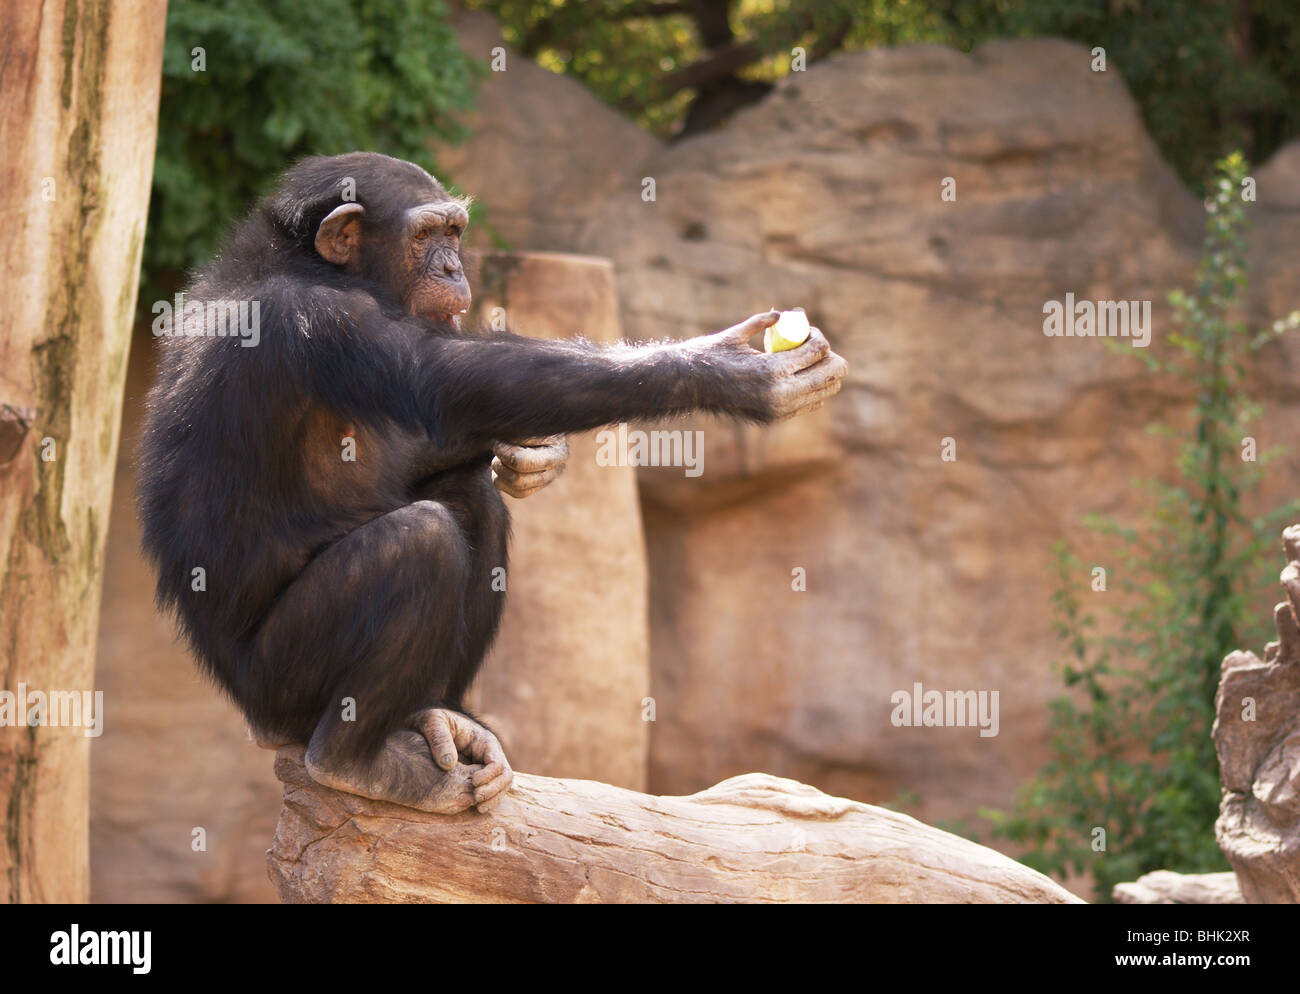 ZOO CHIMP CHIMPANZEE CROUCHING AND HOLDING AN APPLE IN AN OUTSTRETCHED HAND Stock Photo